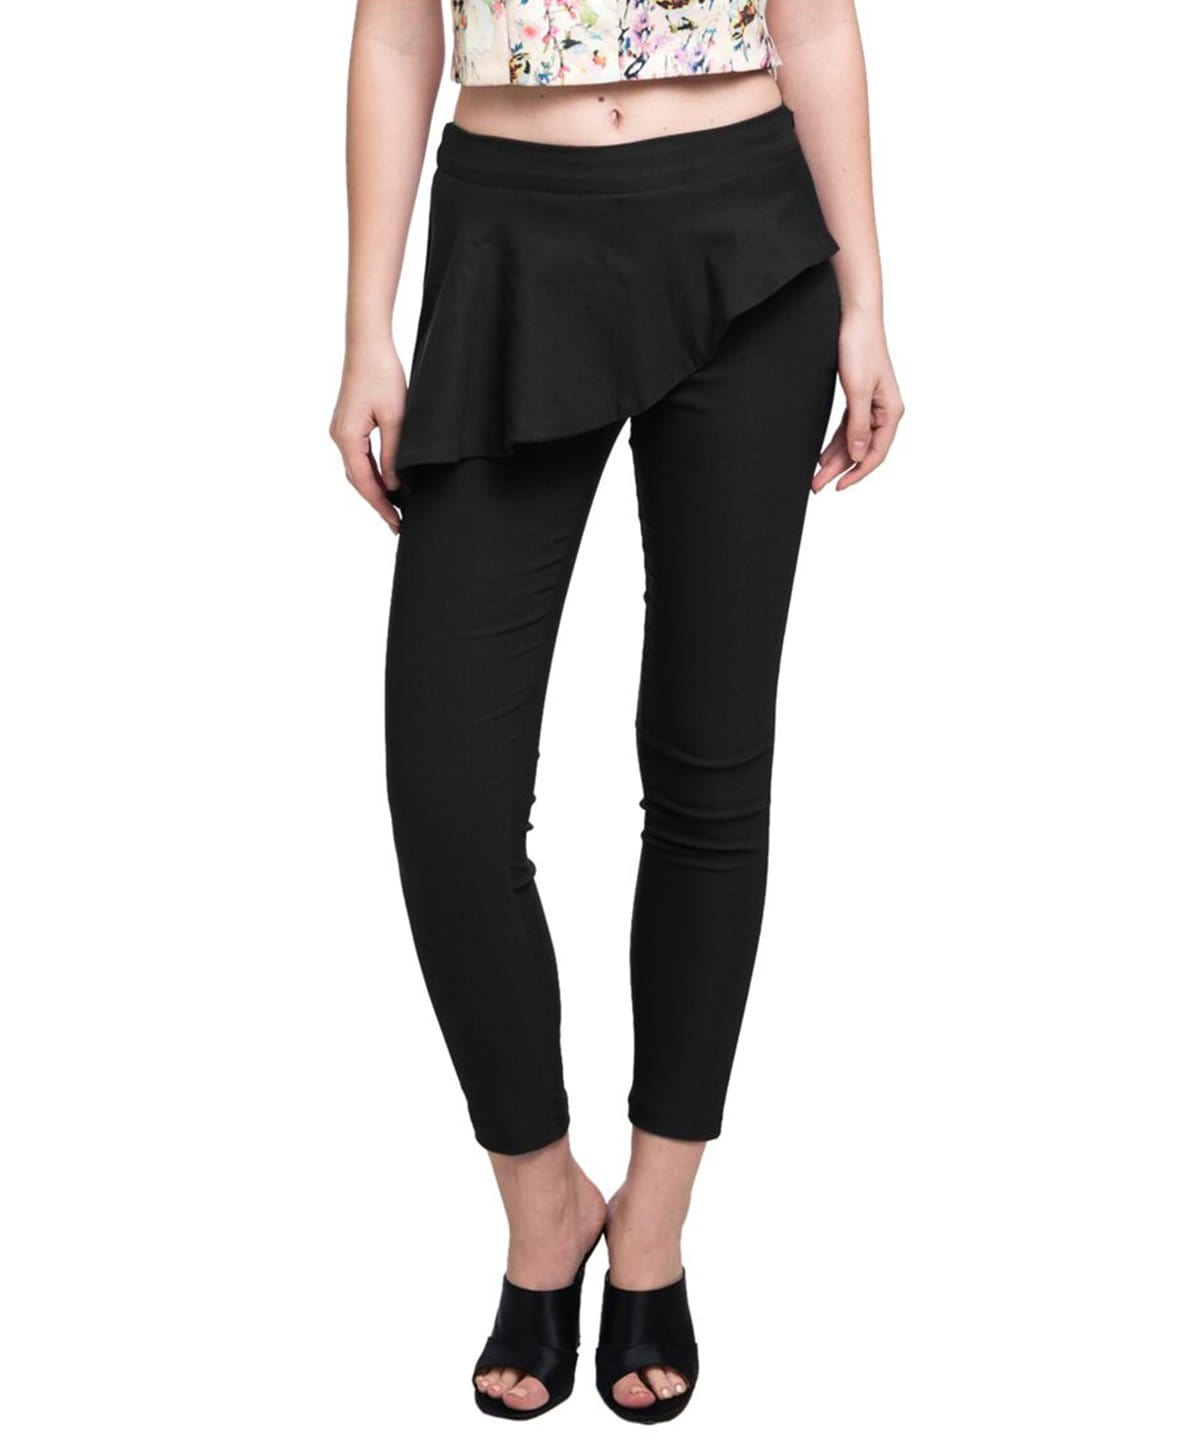 Solid Black Peplum Pants - Uptownie